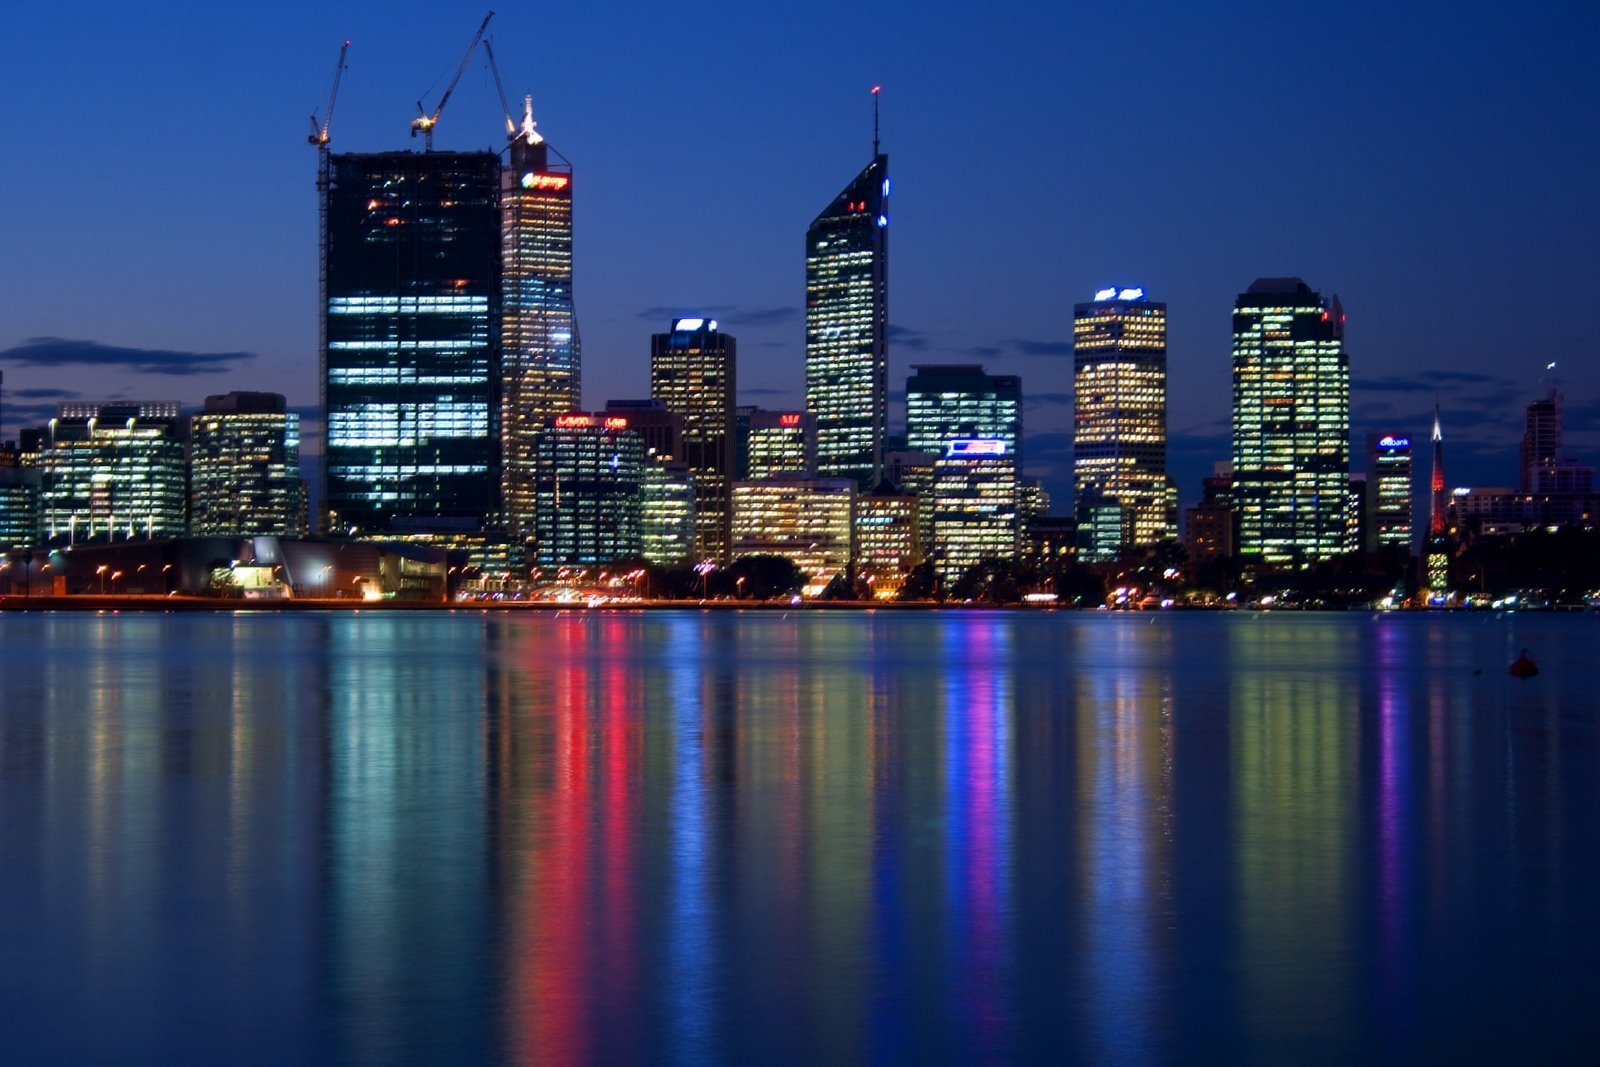 Perth What's On Today Look What 39s Happening In Our Property Markets Perth